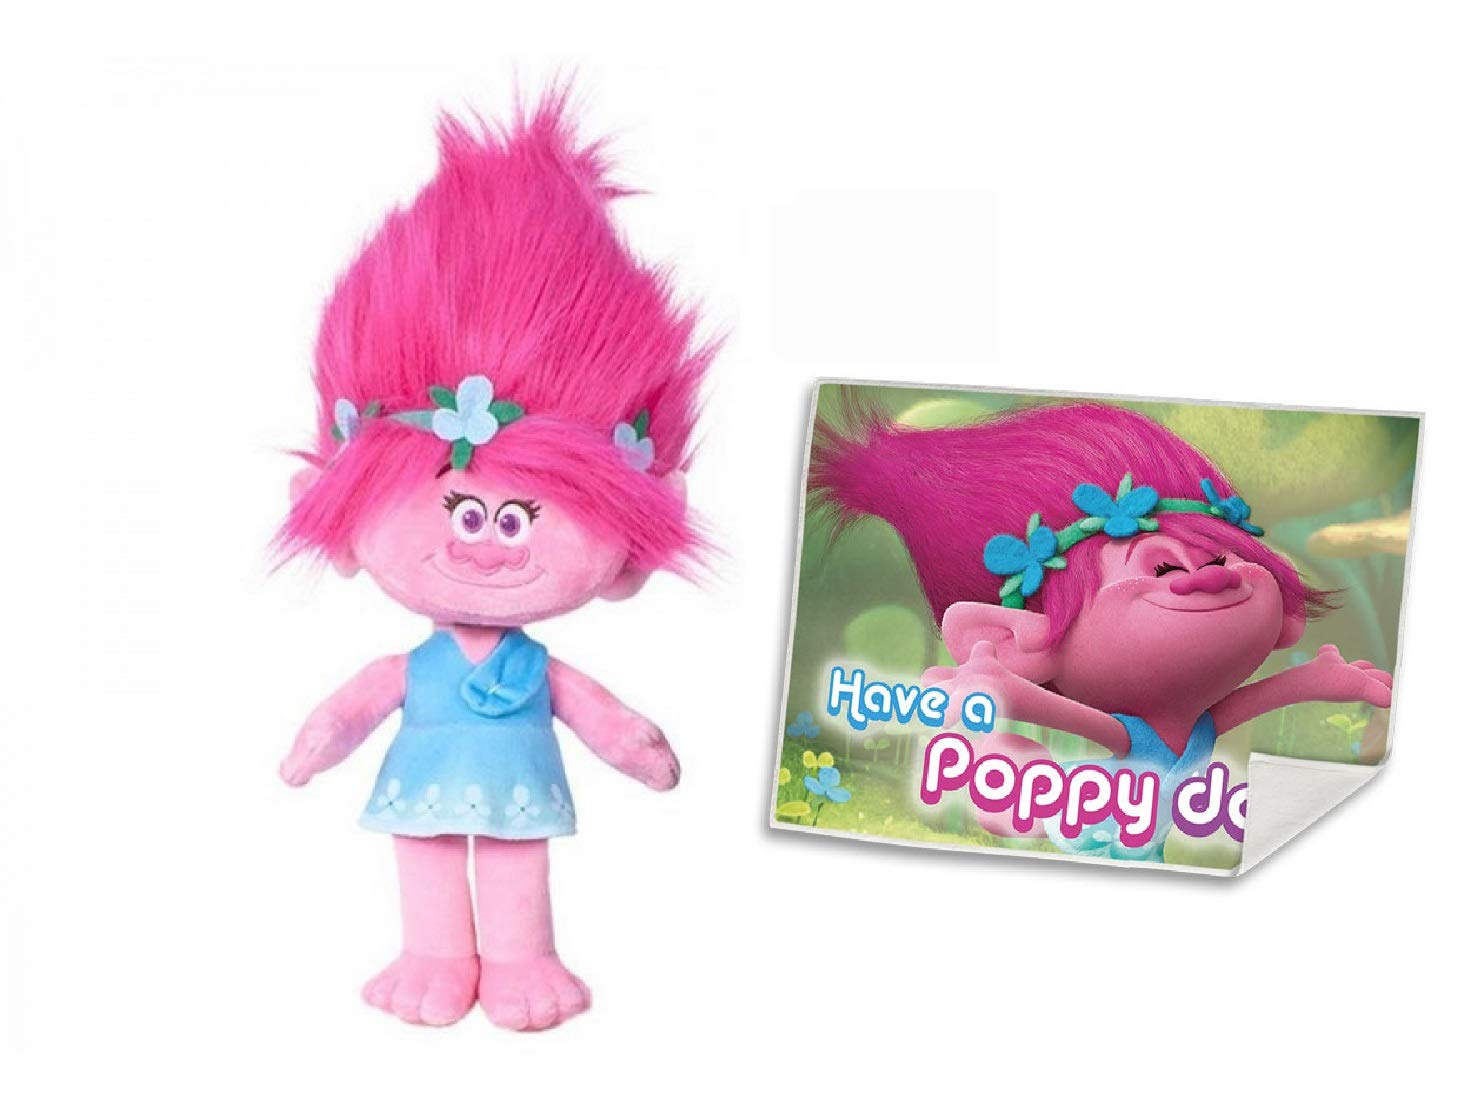 Trolls Poppy DreamWorks Adorable Vibrant Poppy Plush Toy (36cm/14) with Free Face Towel by DREAMWORKS TROLLS